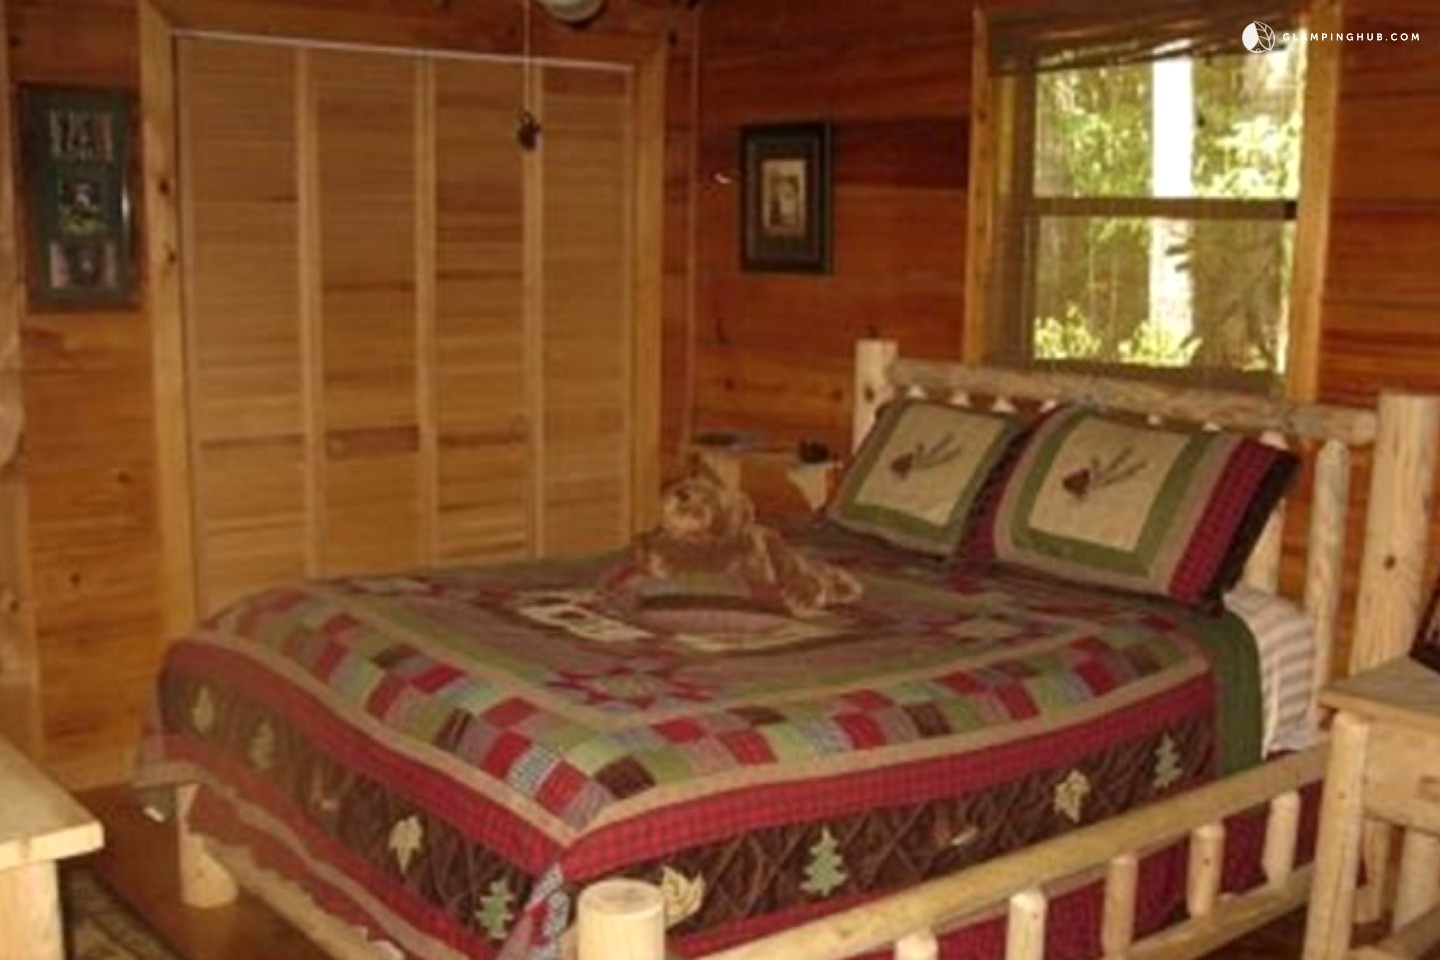 Log cabin rental near blue ridge georgia for 8 bedroom cabins in blue ridge ga